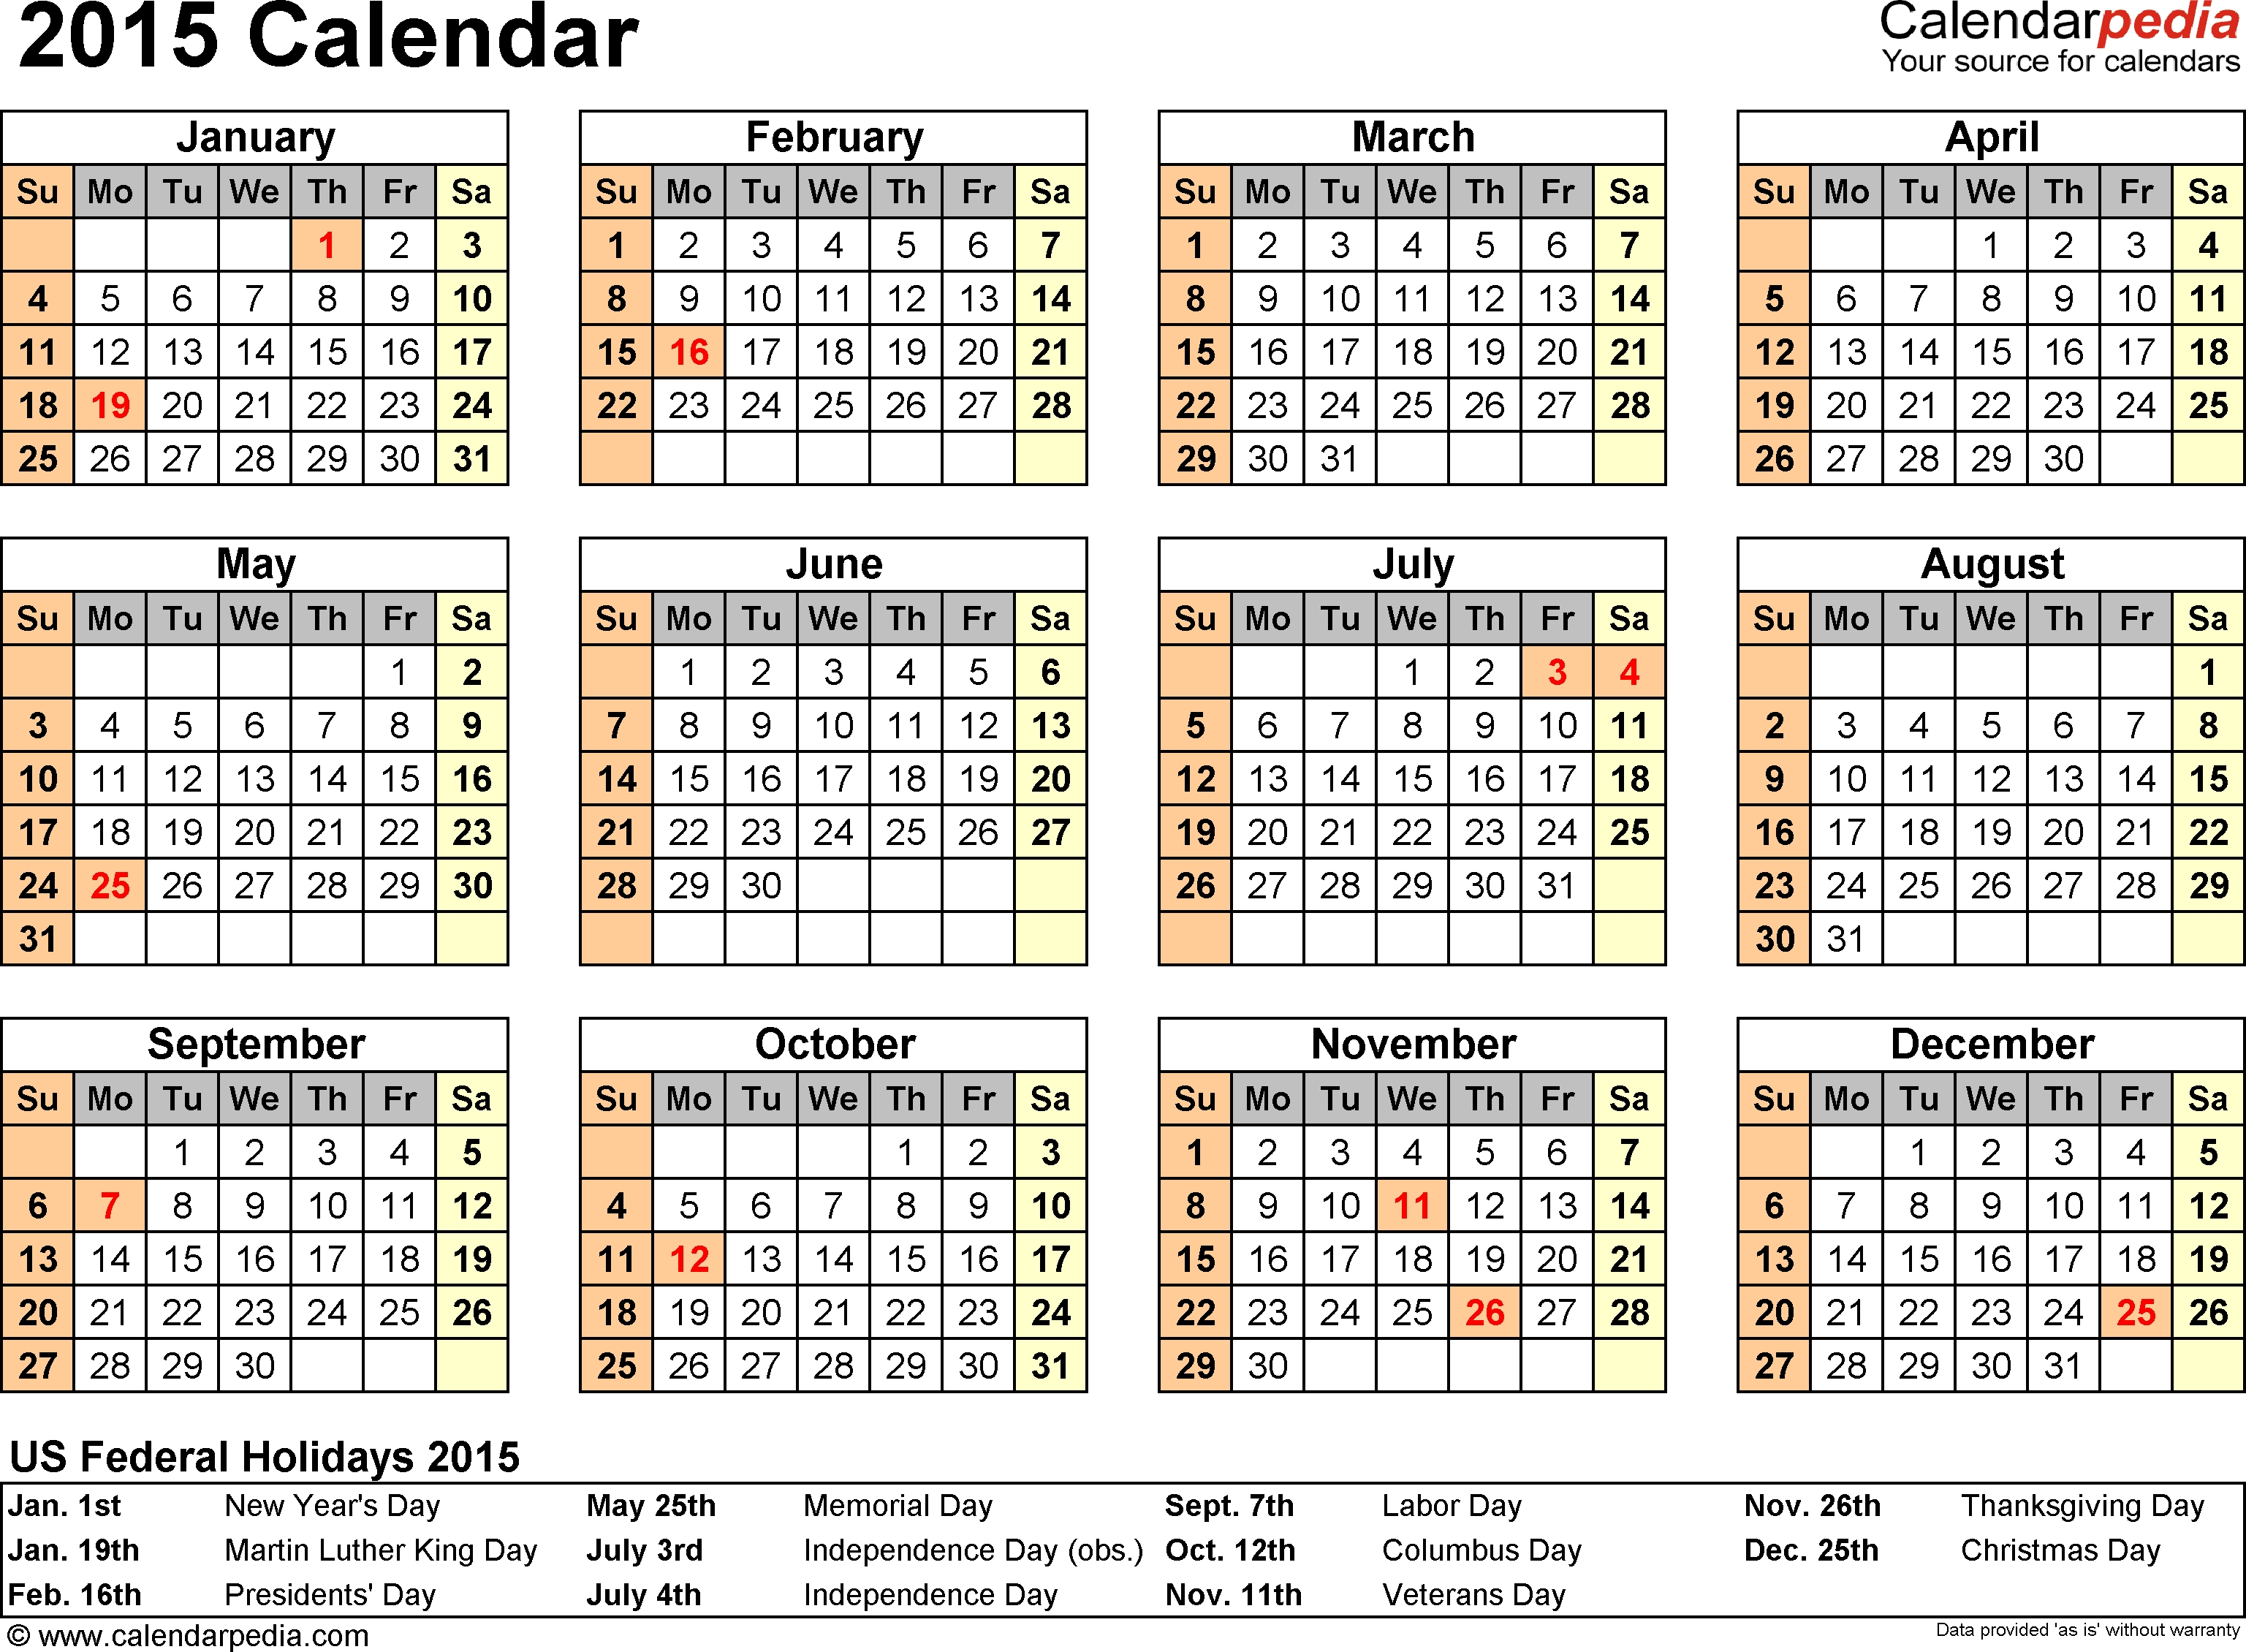 Calendar Template 2015 Excel - Yeniscale.co  Downloadable Employee Vacation Calendar 2015